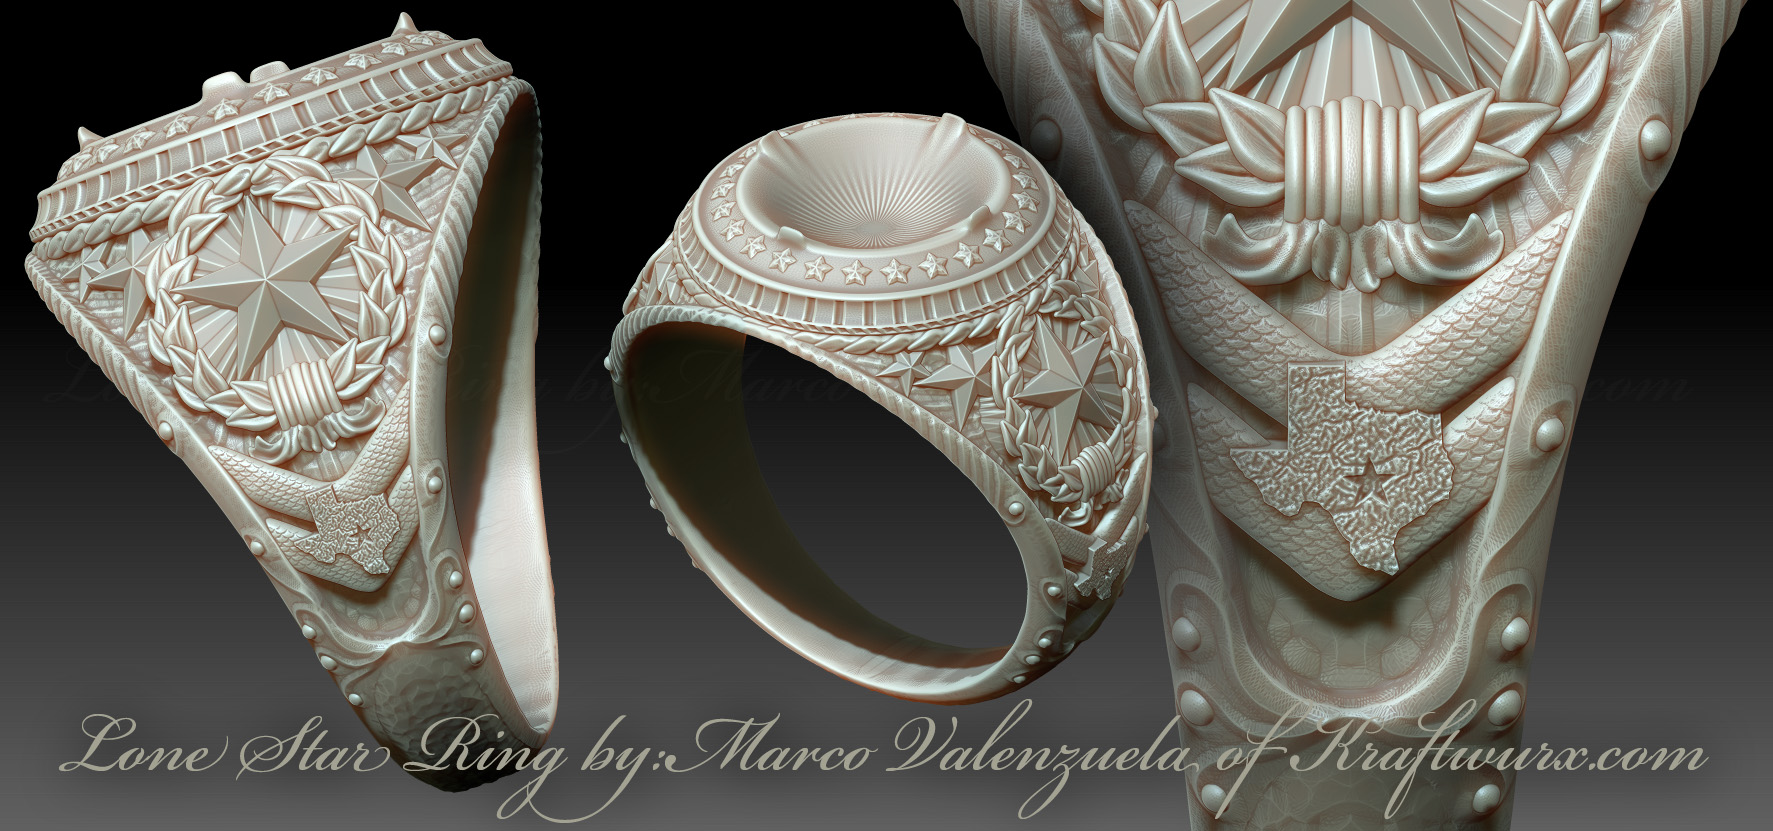 Lone star ring for 3d printing jewelry for 3d wax printer for jewelry